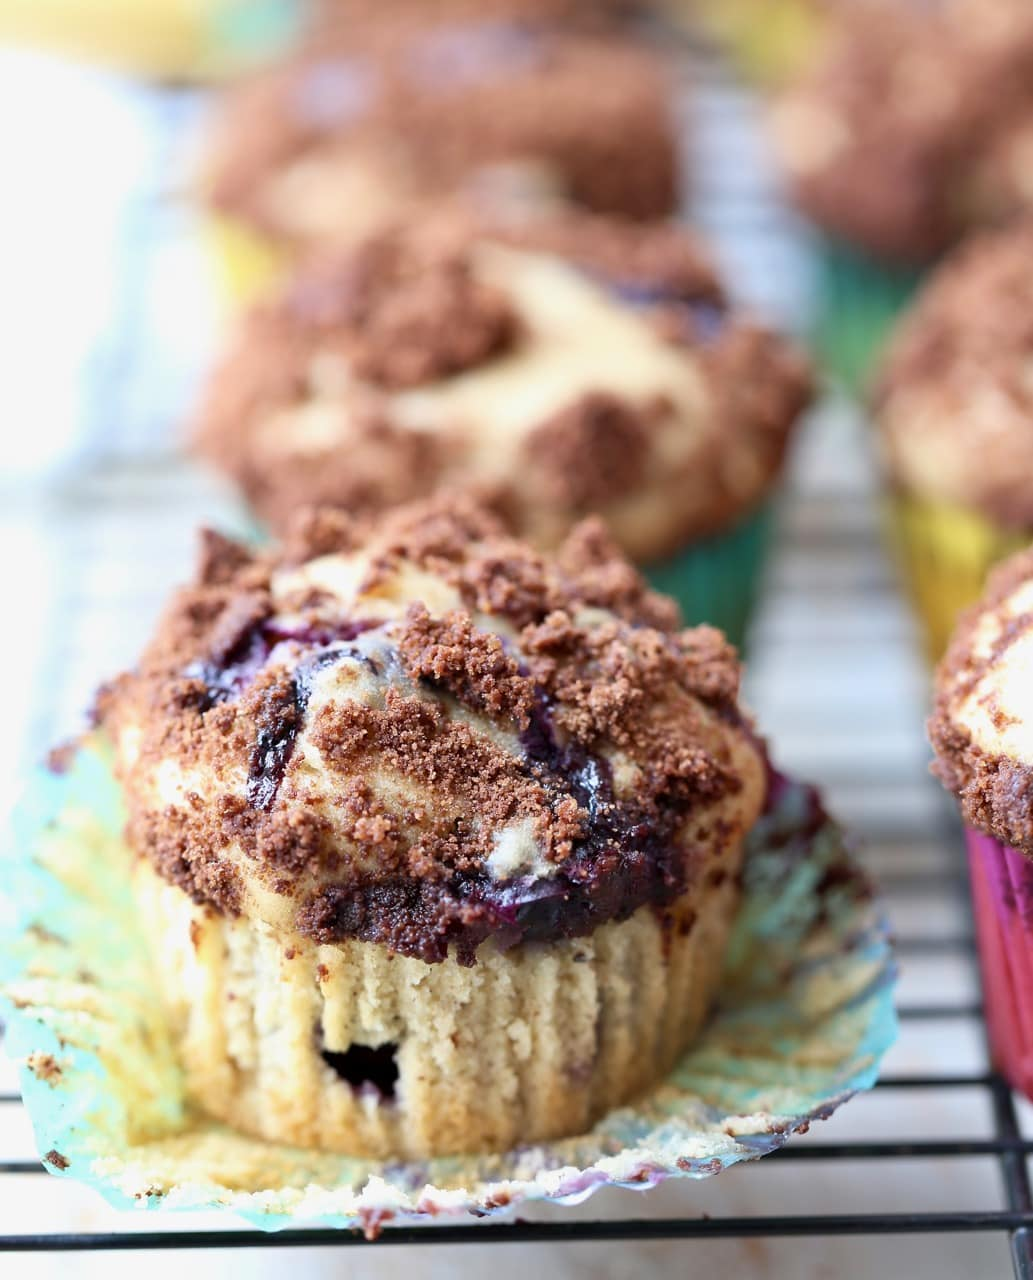 Blueberry Cream Cheese Muffins with Chocolate Crumble with Wrapper Open